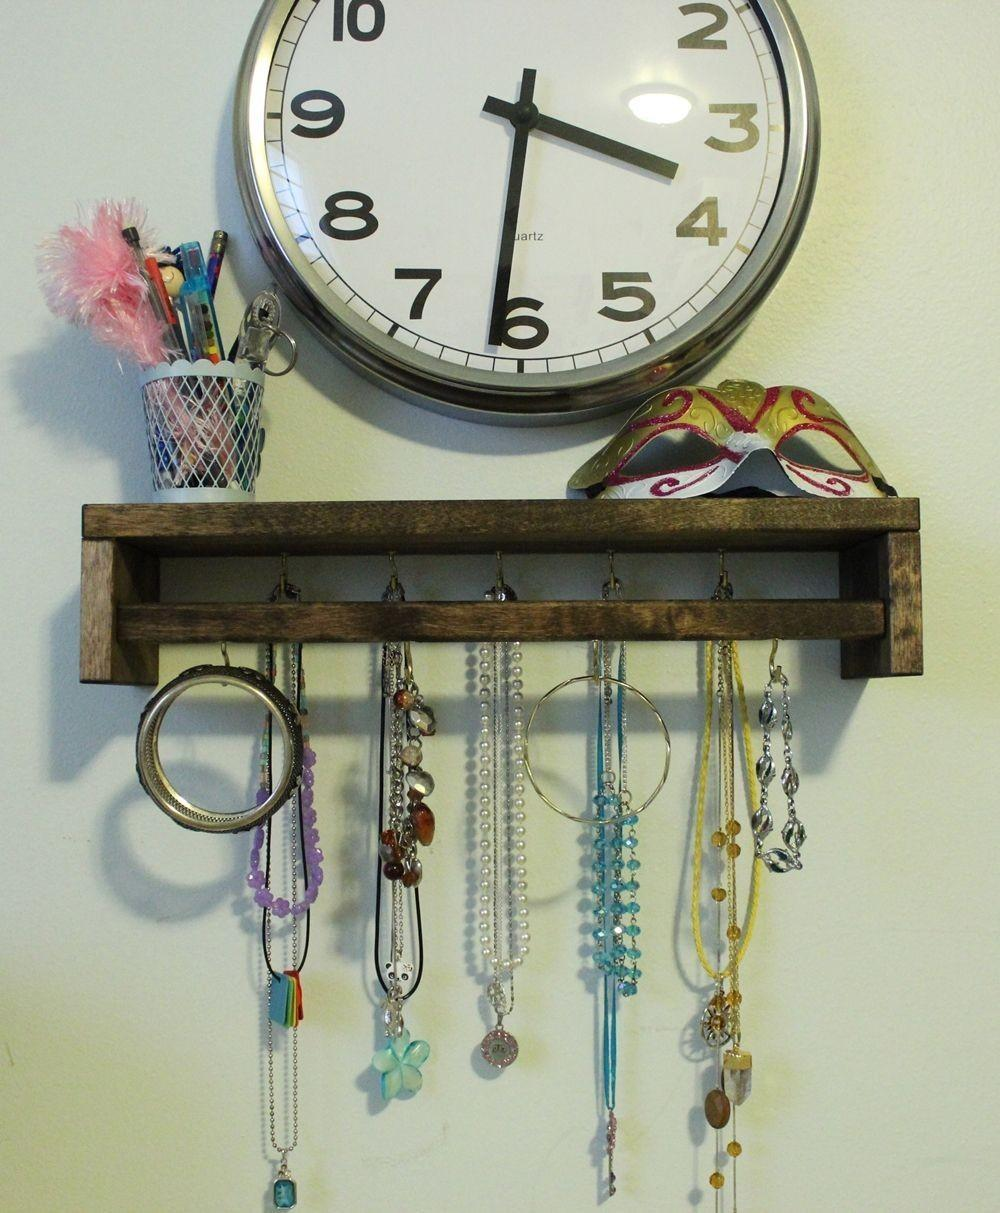 Diy Jewelry Holder Out Spice Rack Hack